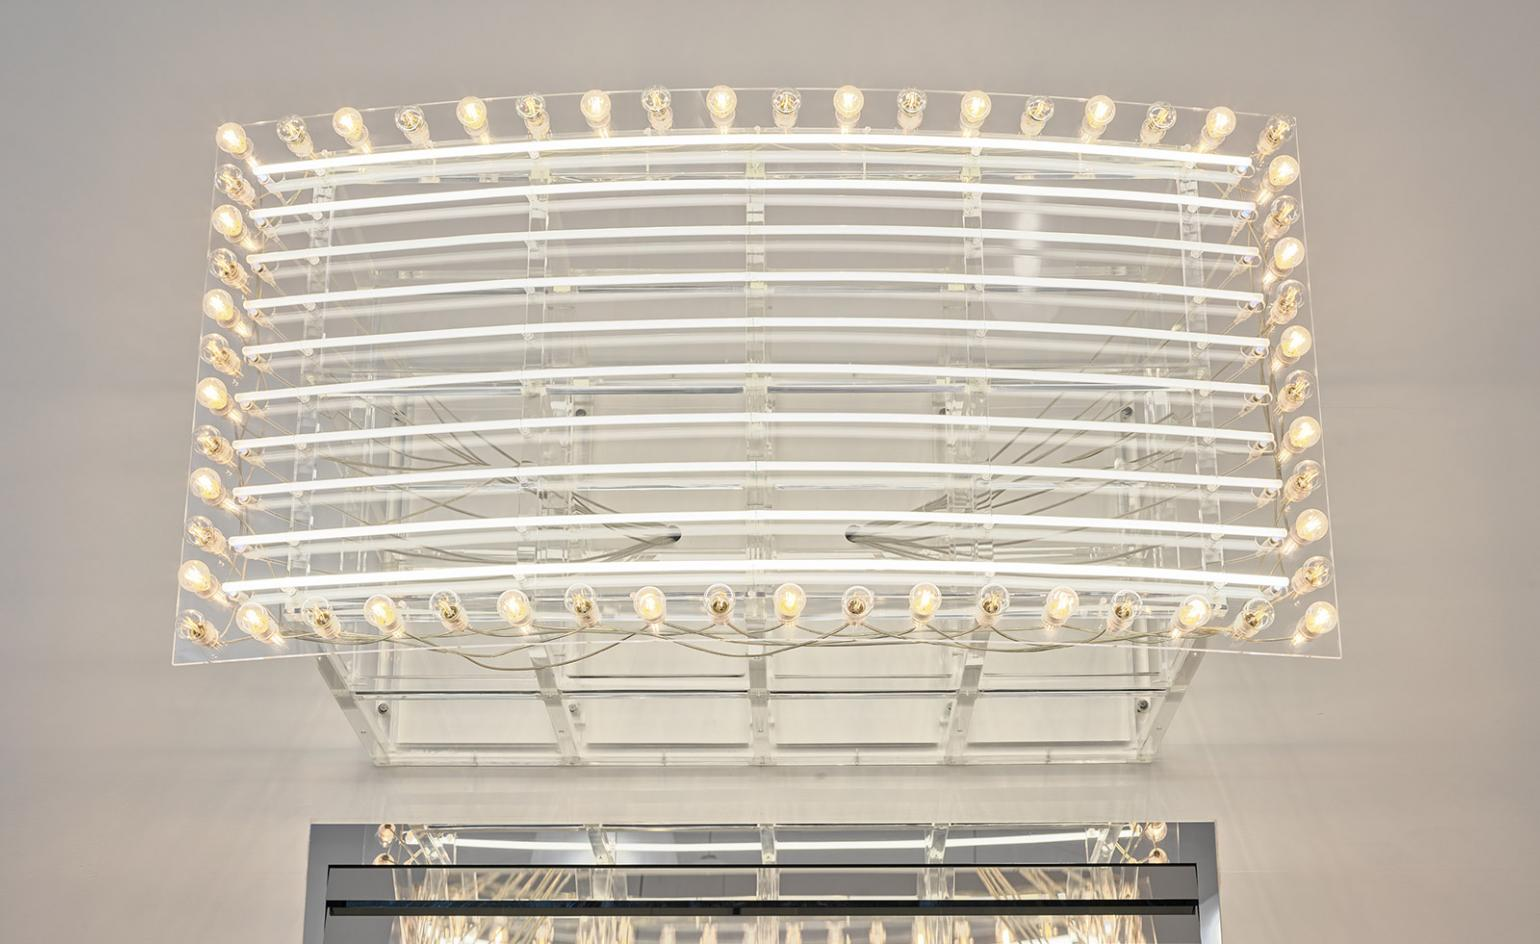 Philippe Parreno unveils new commission at the revamped MoMA